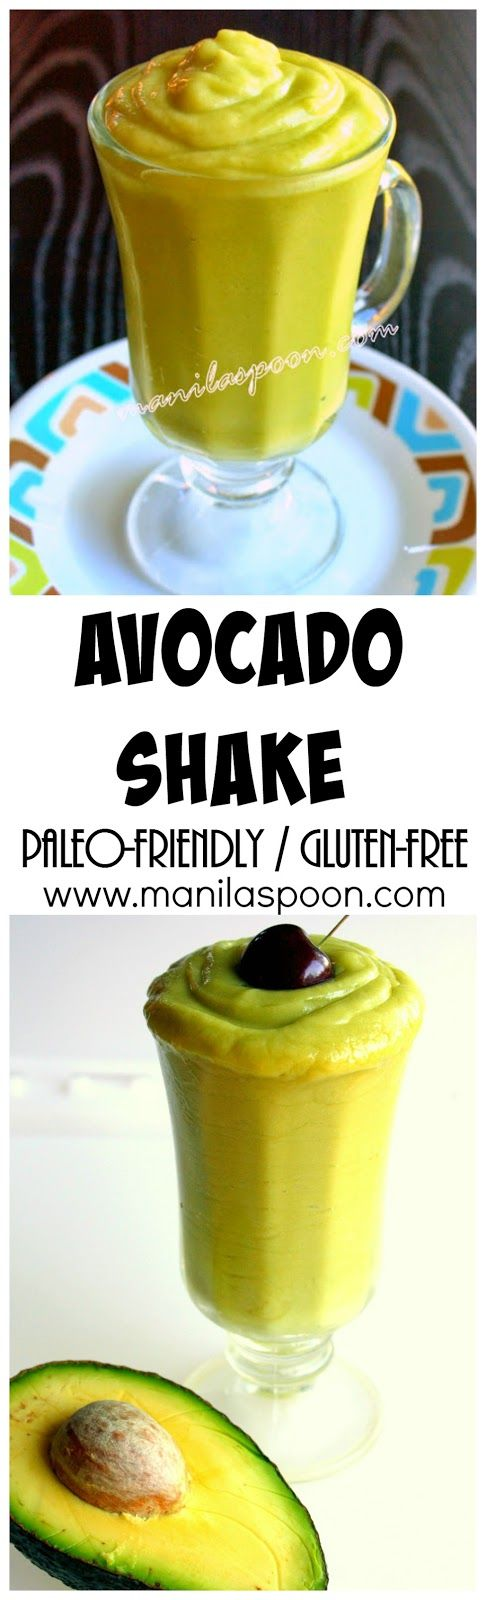 Velvety smooth, creamy and delicious is this healthy, gluten-free and paleo-friendly Avocado Smoothie or Shake. Make it the way you like it!